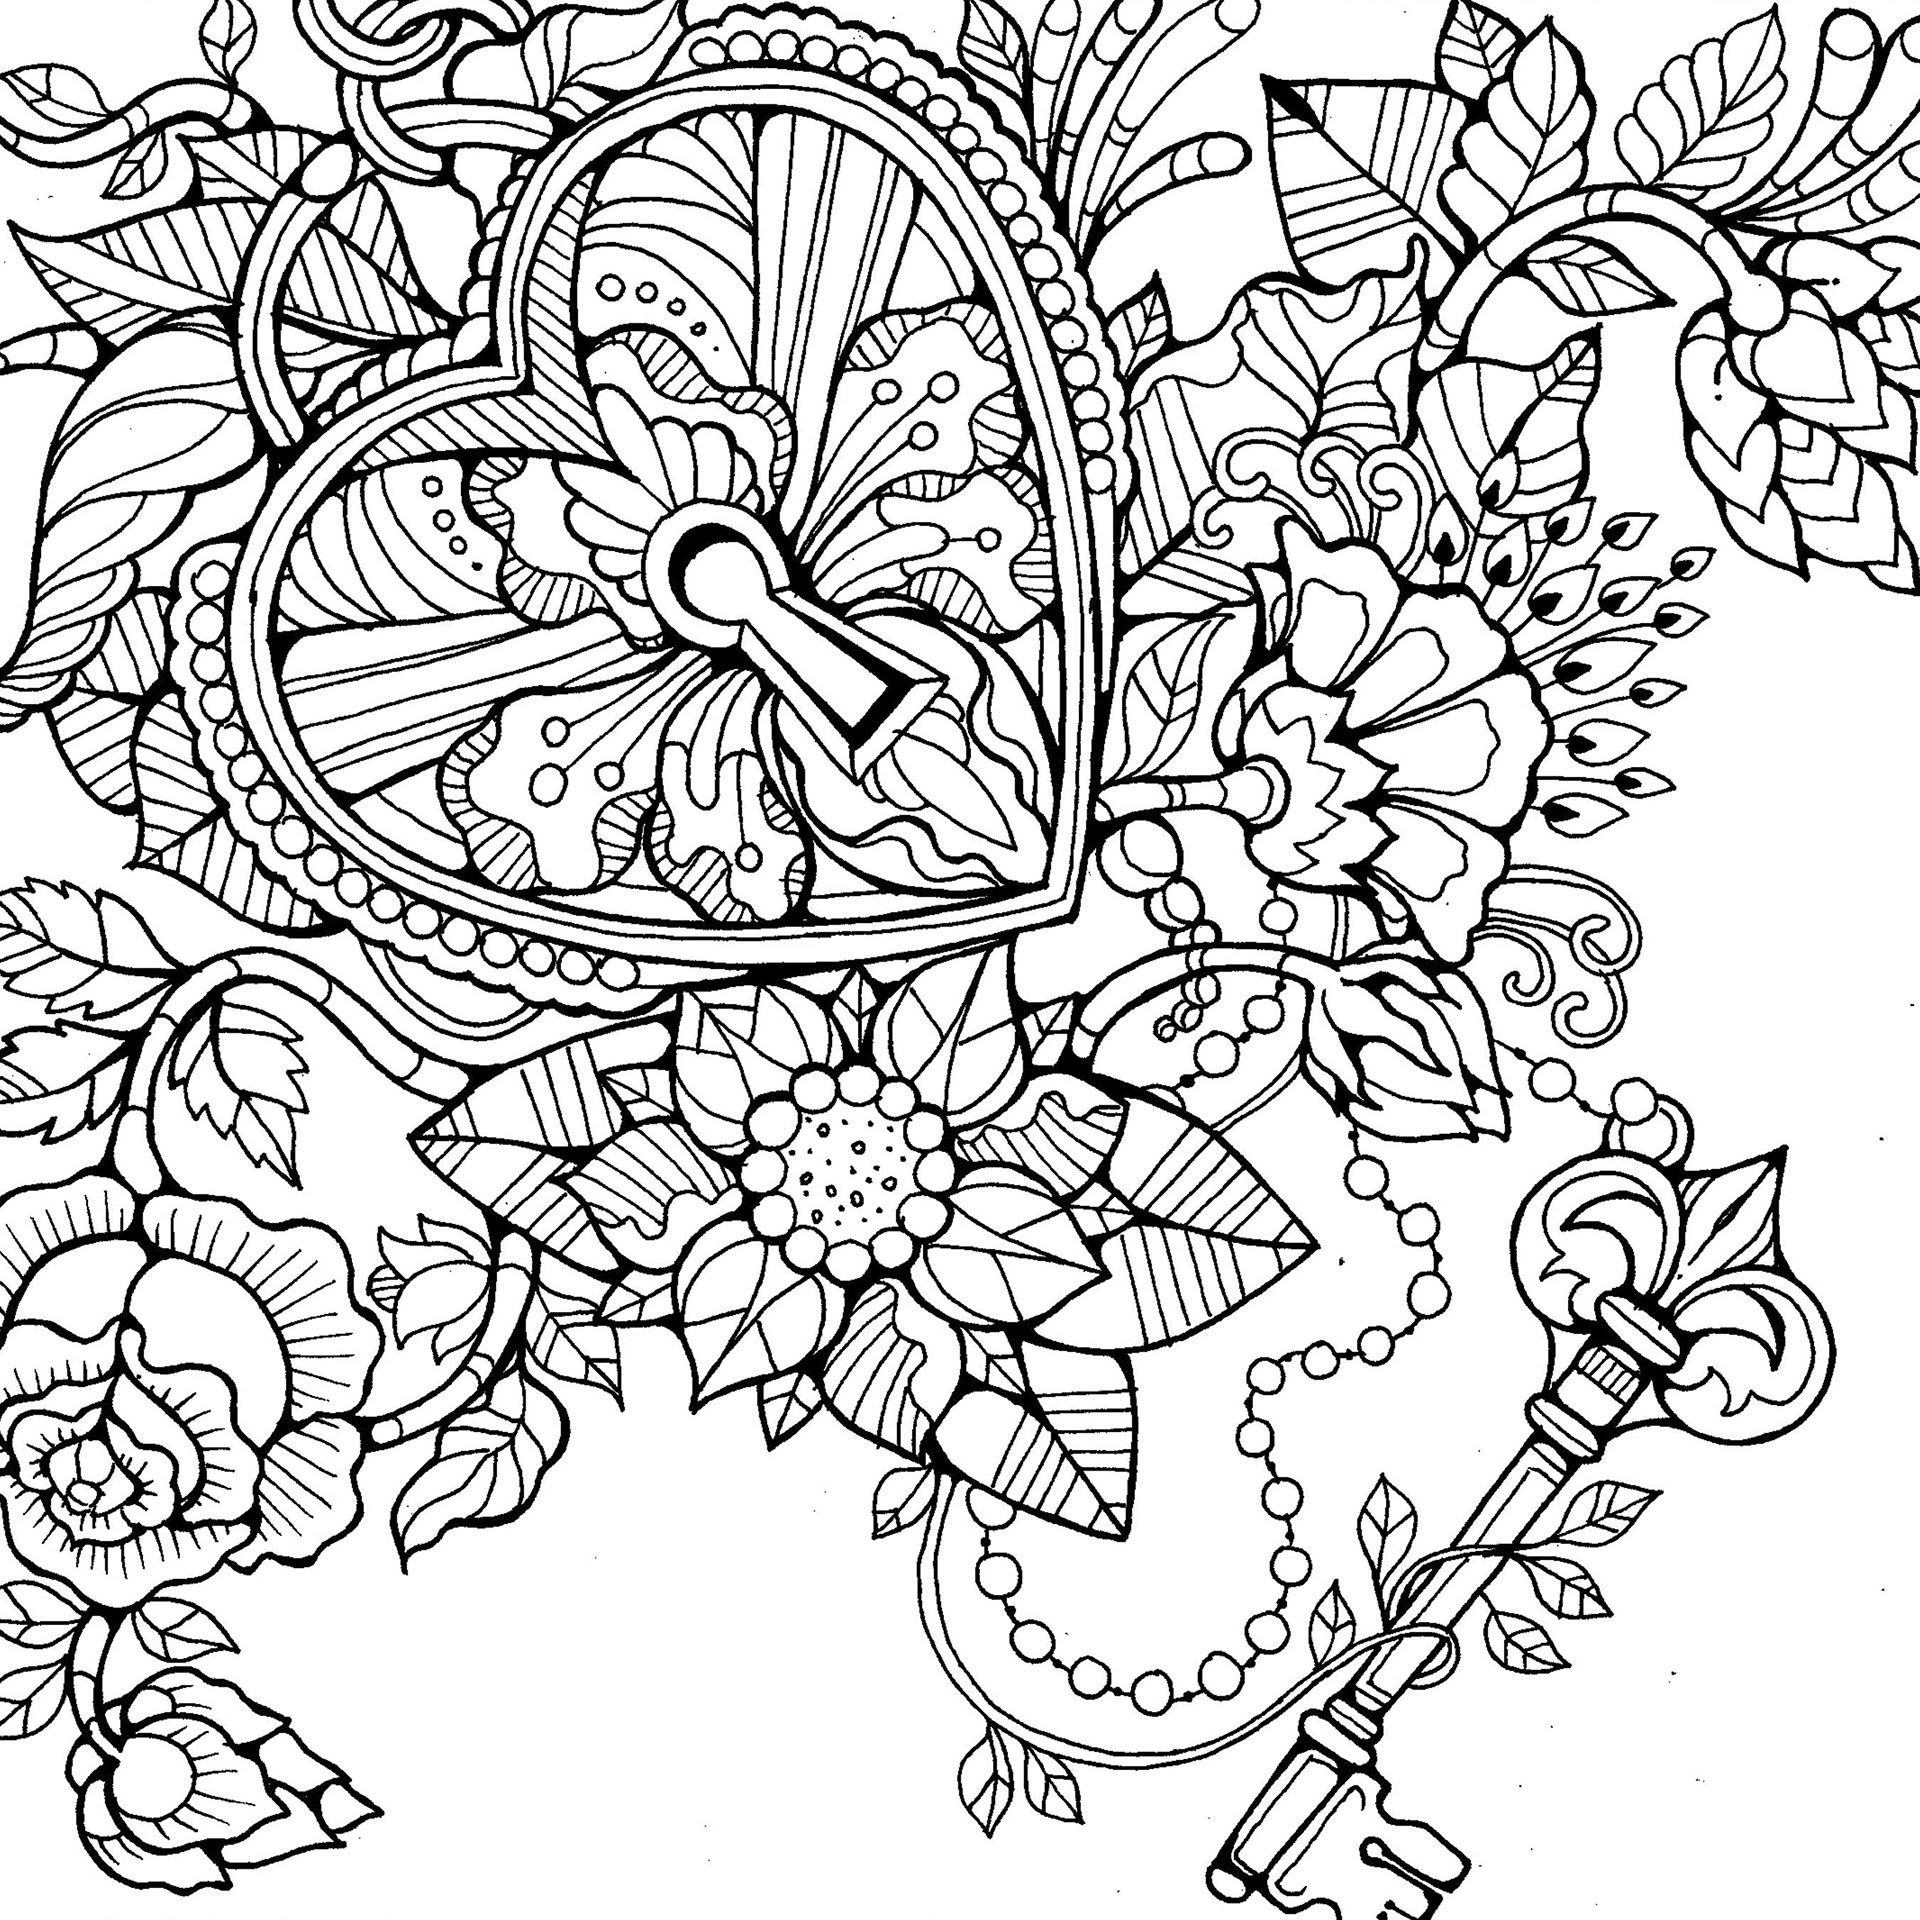 Colouring Pages on Behance | Dream catcher coloring pages ...